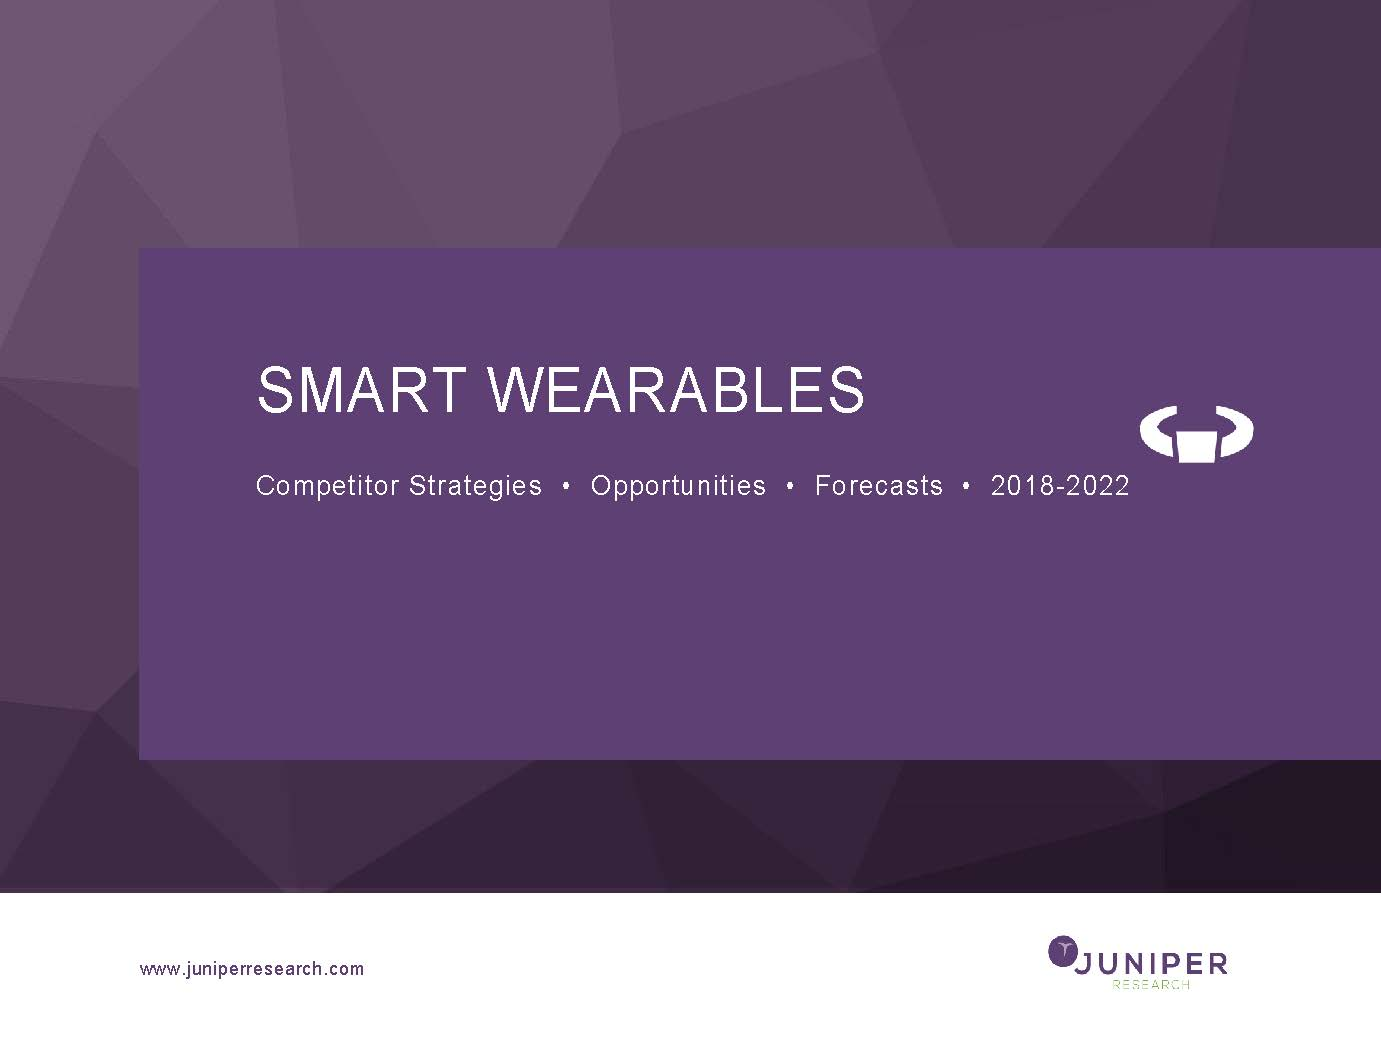 Smart Wearables: Competitor Strategies, Opportunities & Forecasts 2018-2022